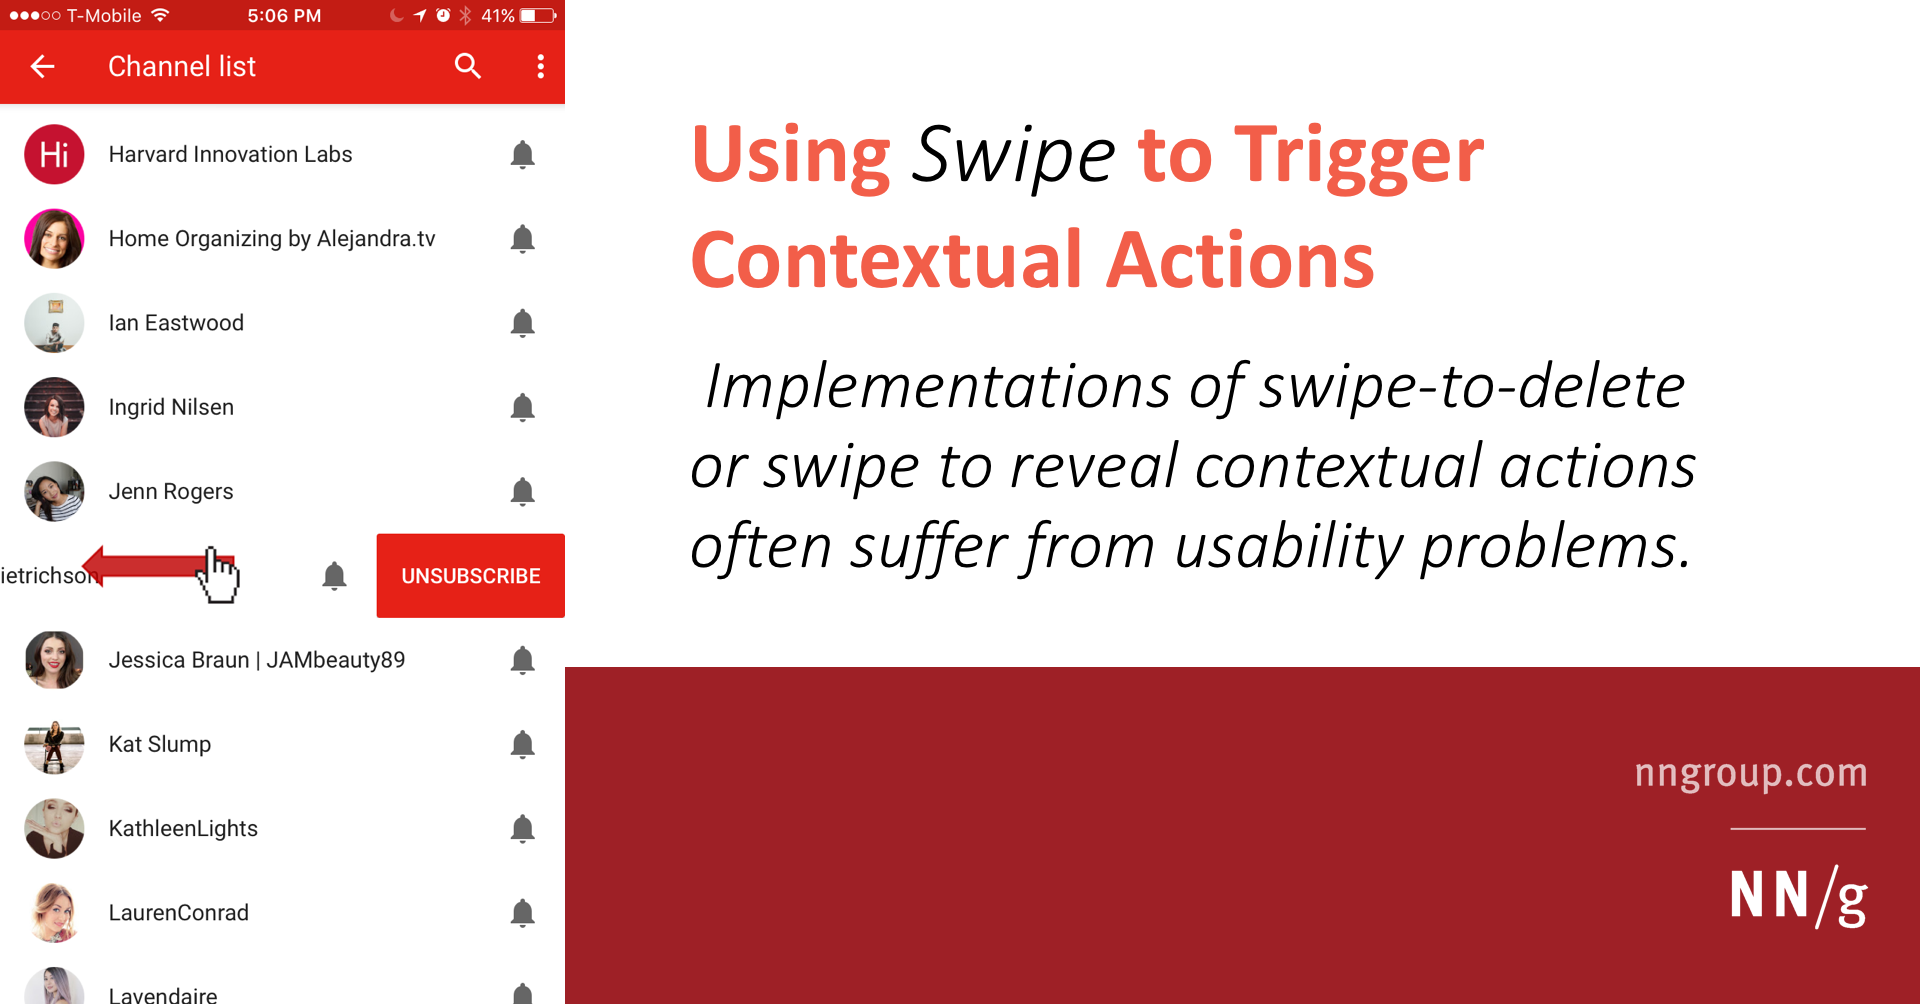 Using Swipe to Trigger Contextual Actions